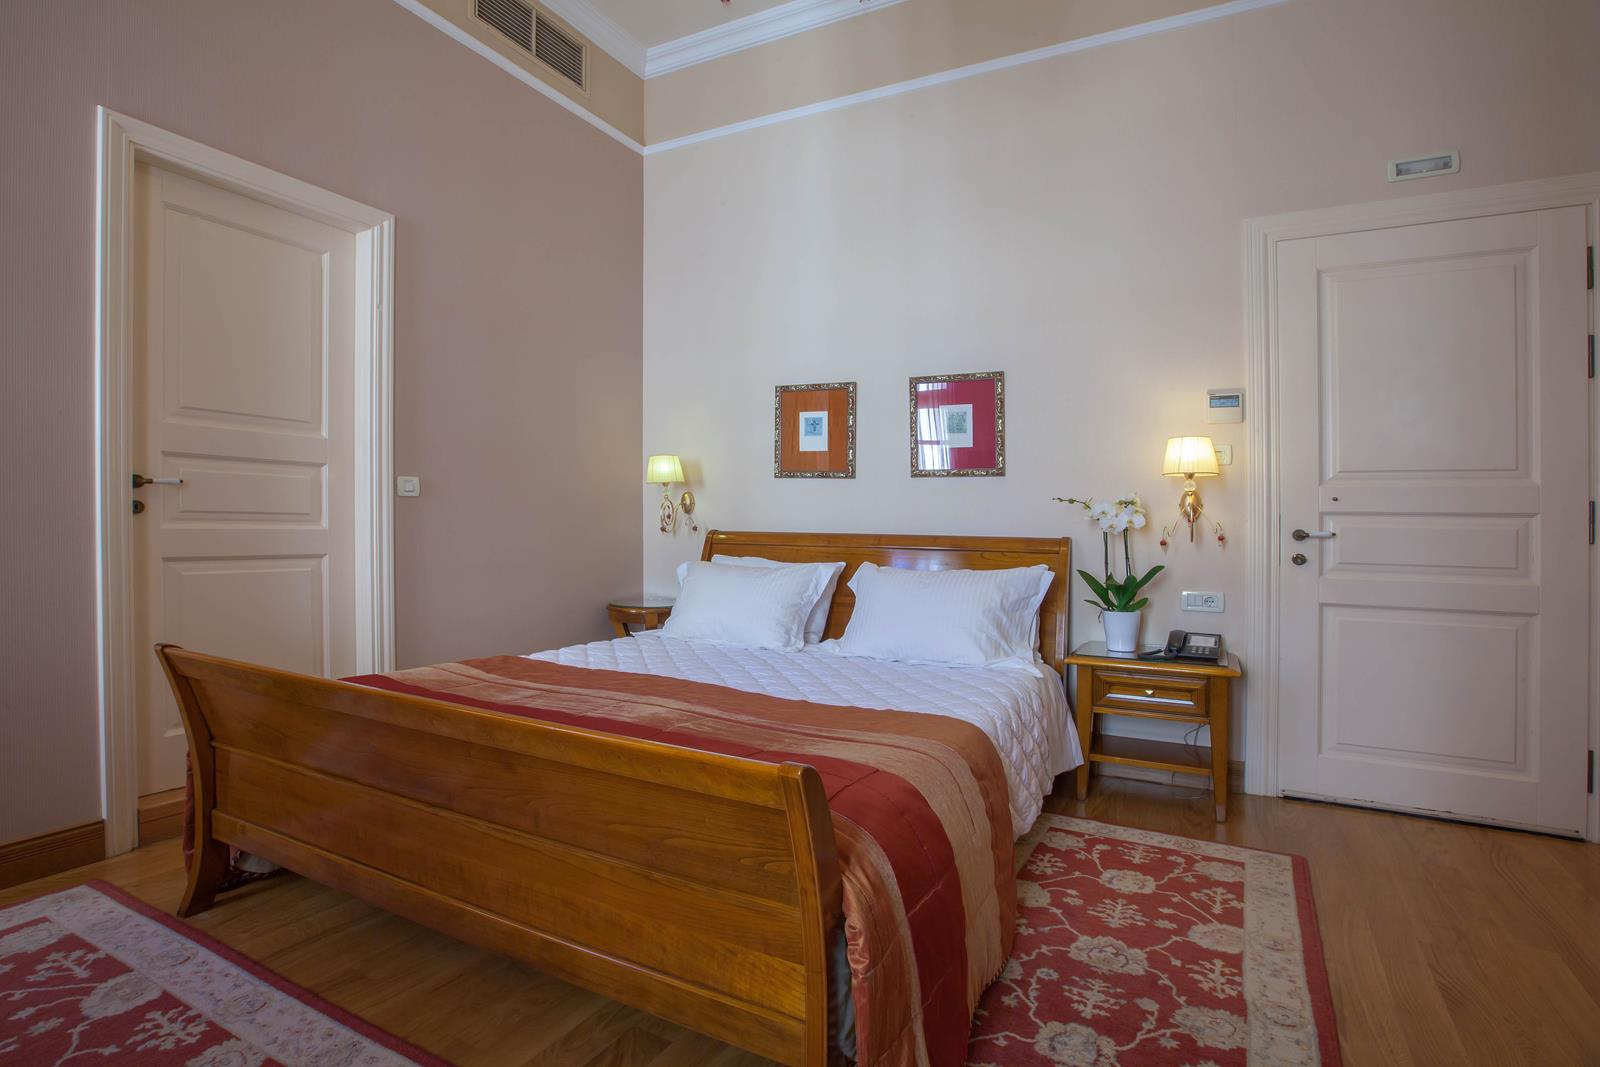 rooms in nafplio - Aetoma hotel